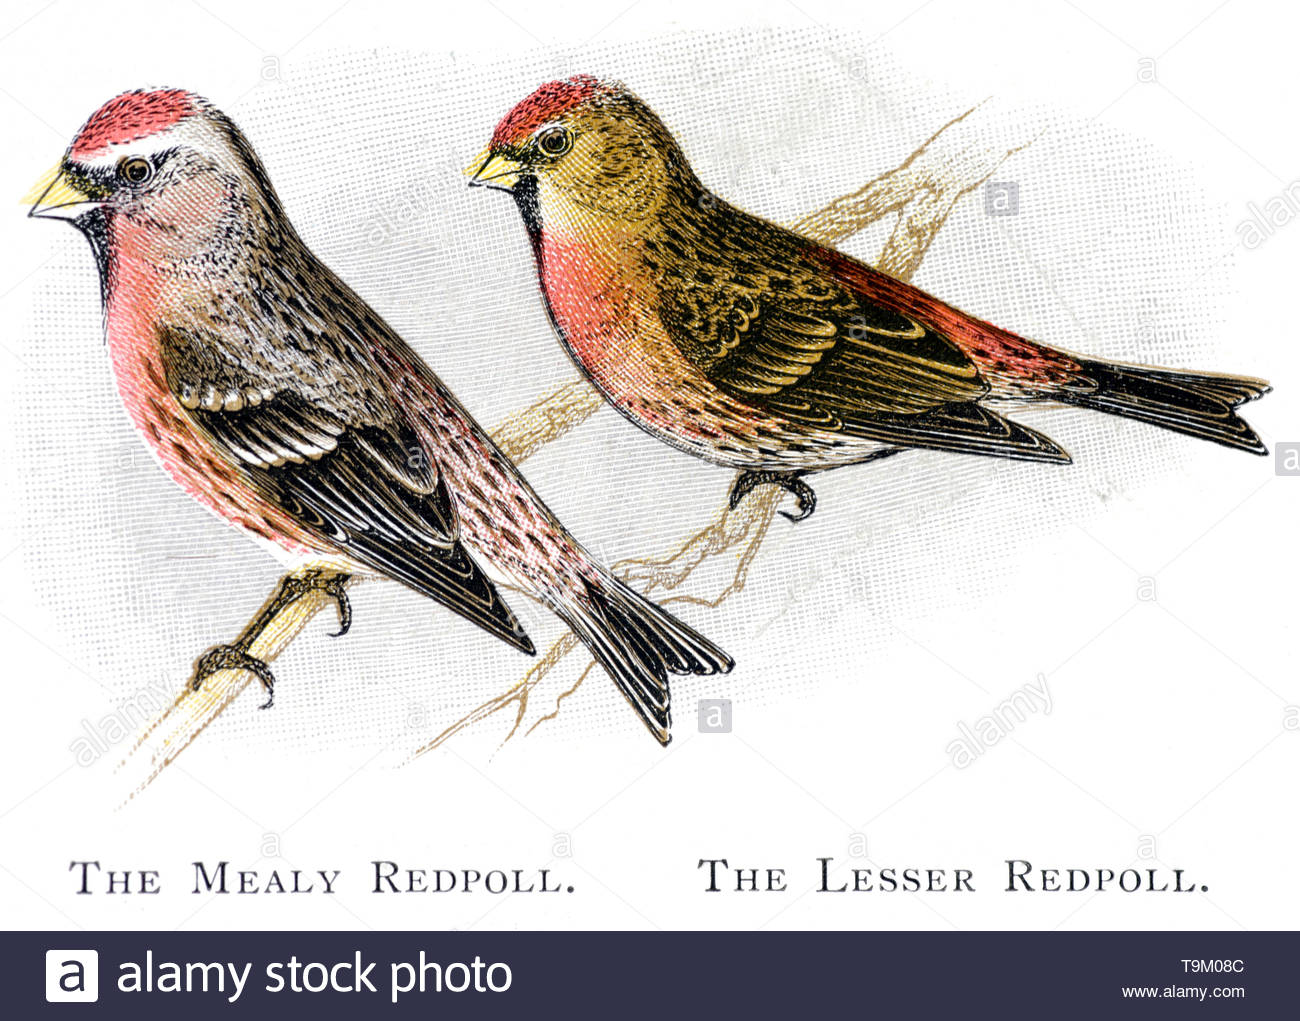 Mealy Redpoll (Carduelis flammea) and Lesser Redpoll (Carduelis cabaret), vintage illustration published in 1898 - Stock Image